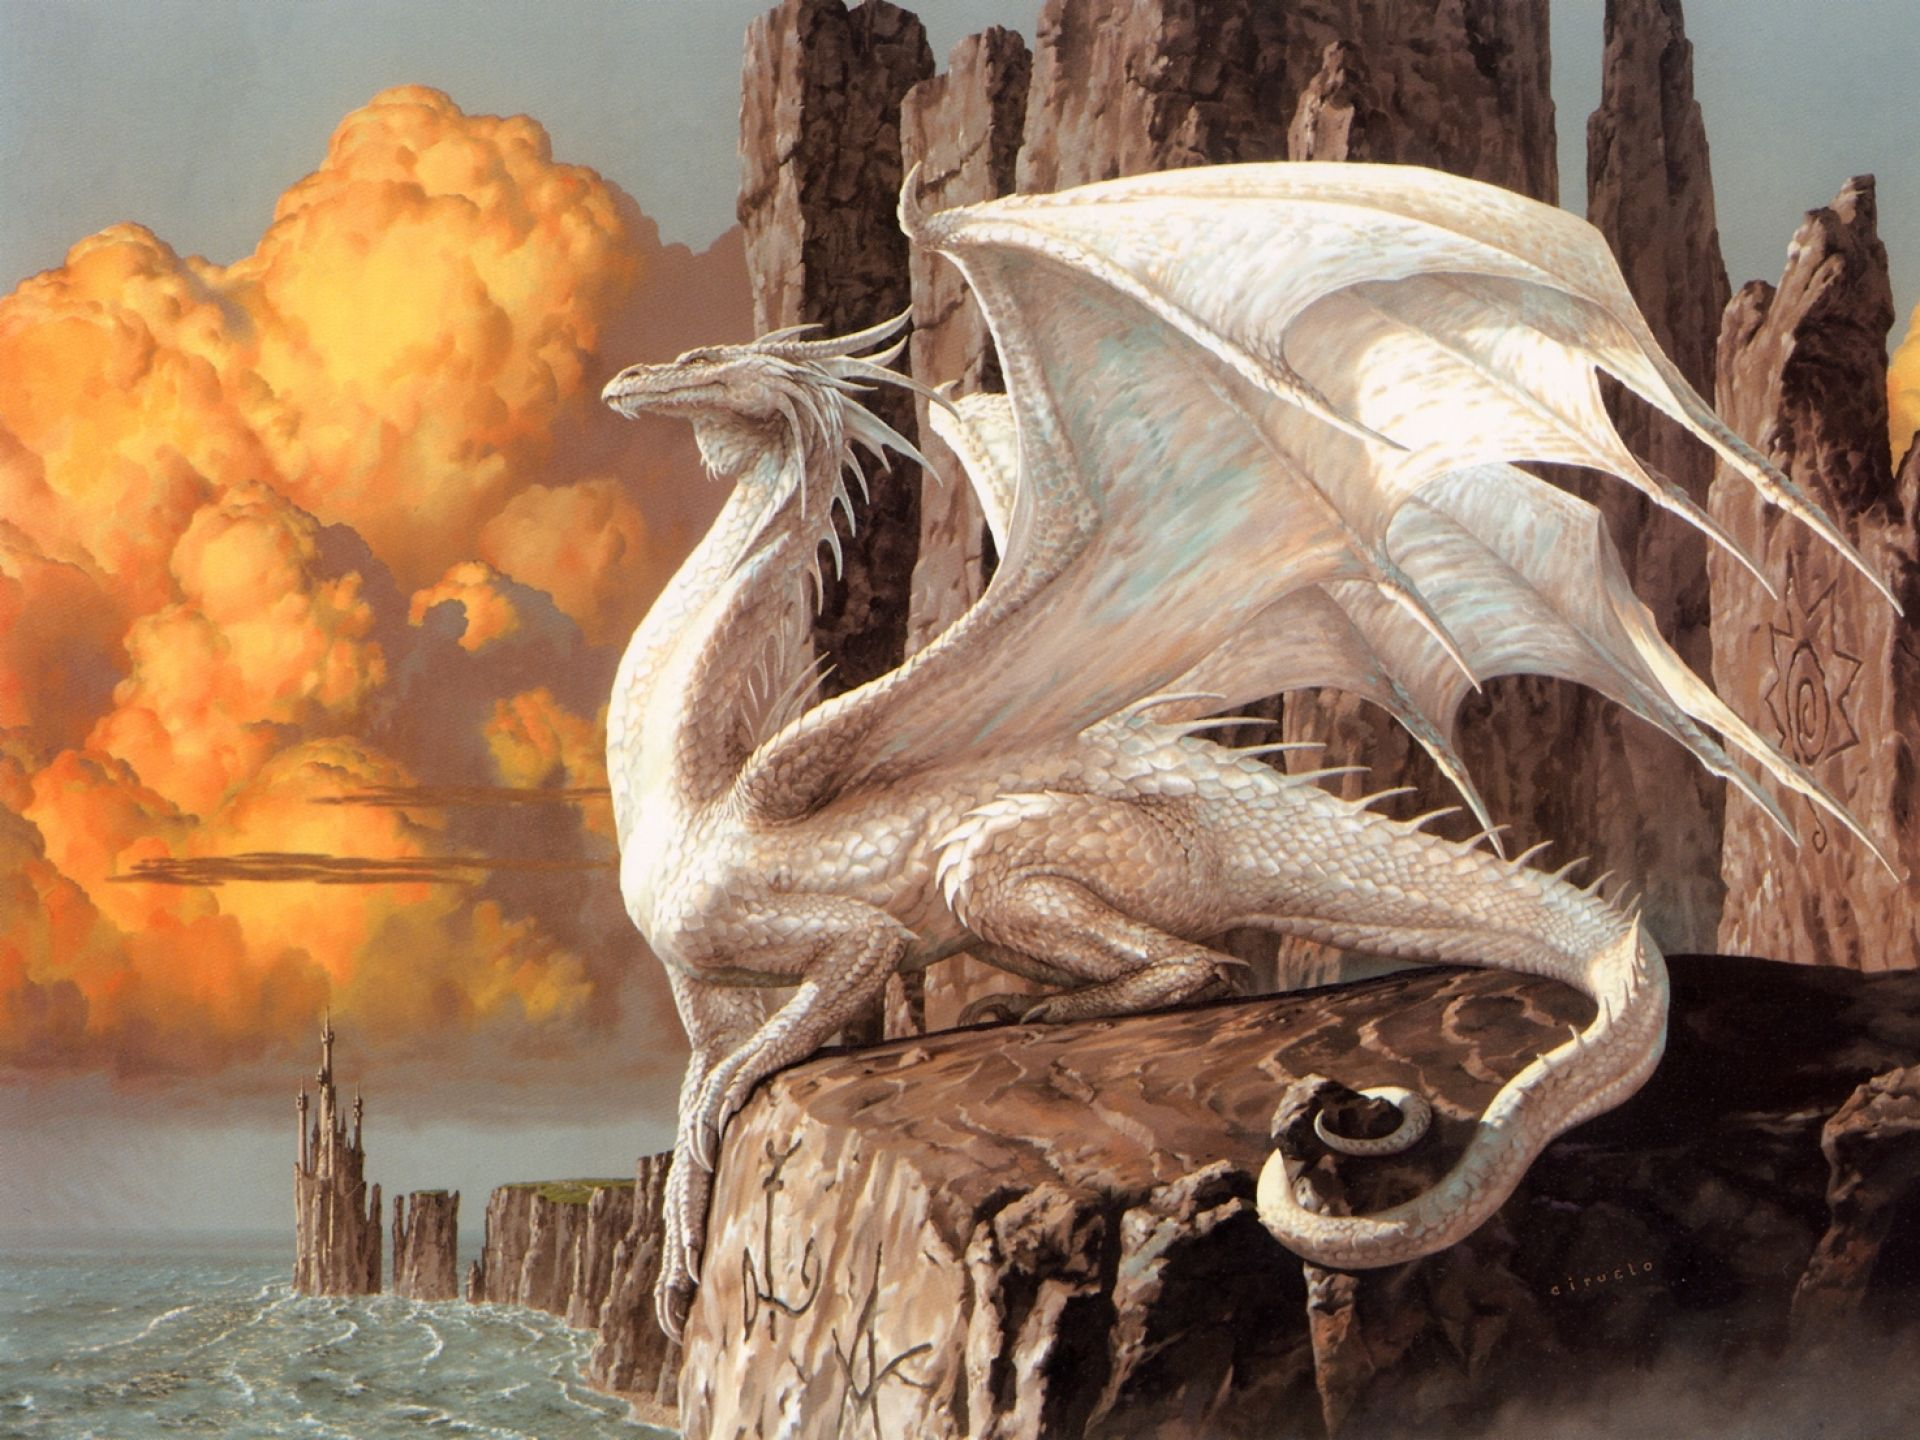 Download Wallpapers Download 1920x1440 Dragons Fantasy Art 1600x1106 Wallpaper Wallpaper Free Wallpapers Do Dragon Pictures Fantasy Dragon Mythical Creatures